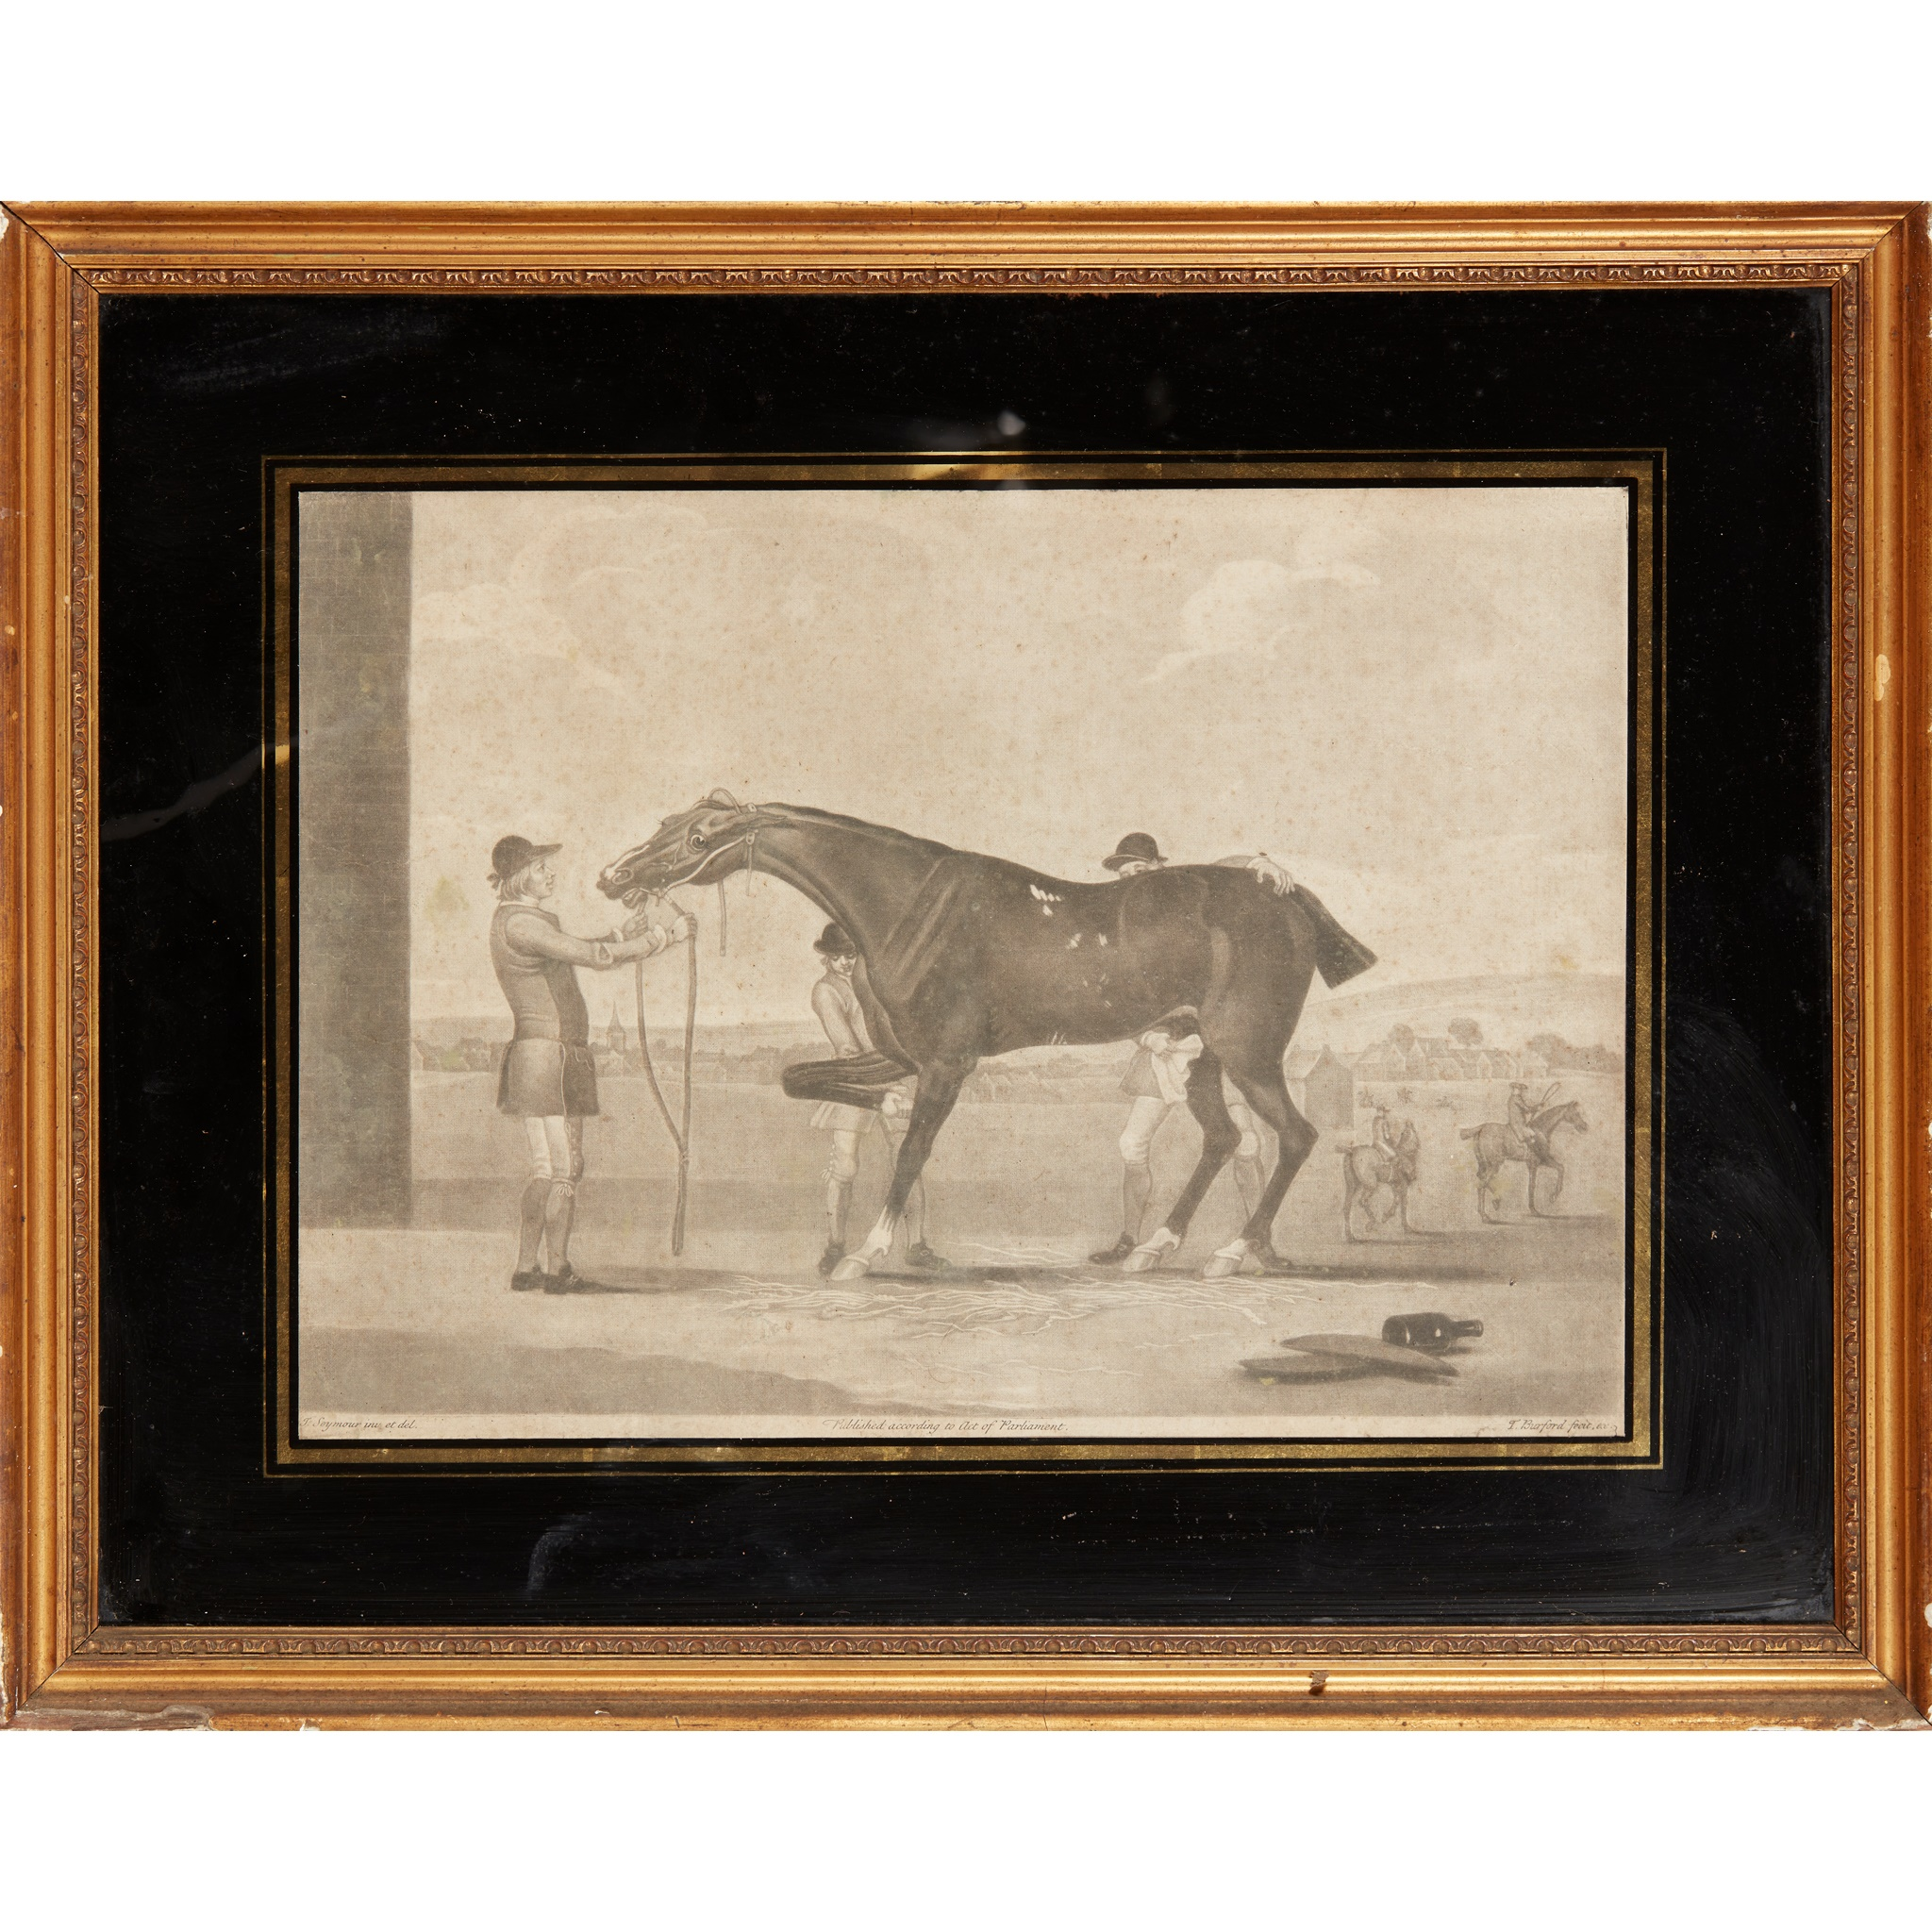 COLLECTION OF ELEVEN MEZZOTINT EQUESTRIAN PRINTS LATE 18TH CENTURY - Image 2 of 8